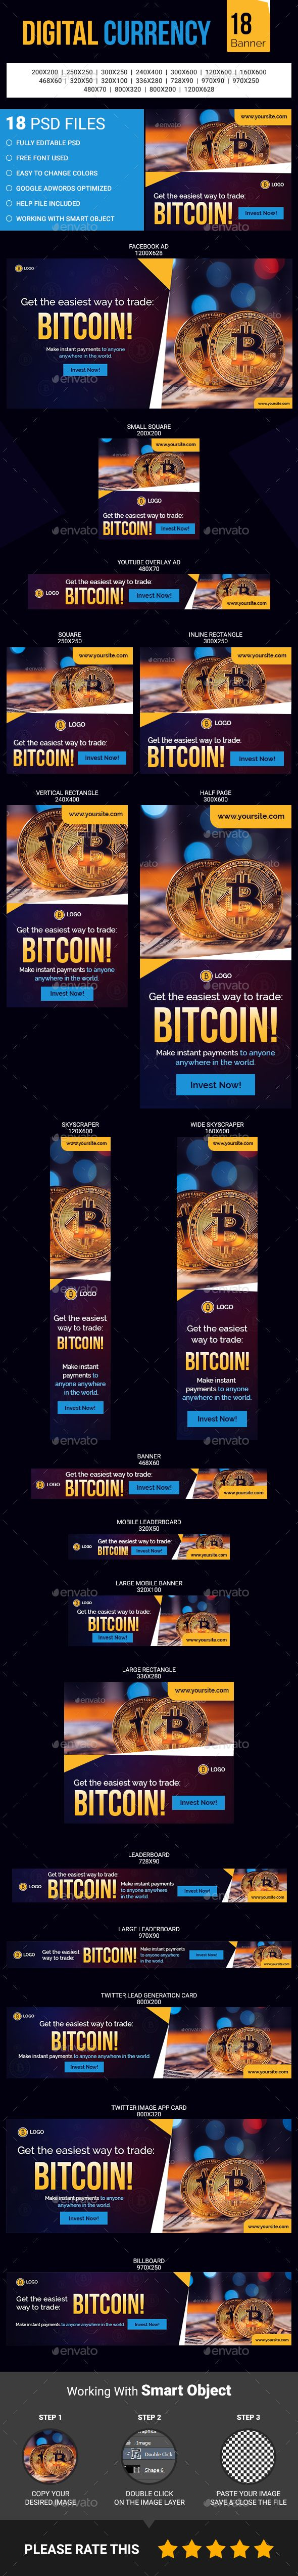 Digital Currency Banner - Banners & Ads Web Elements